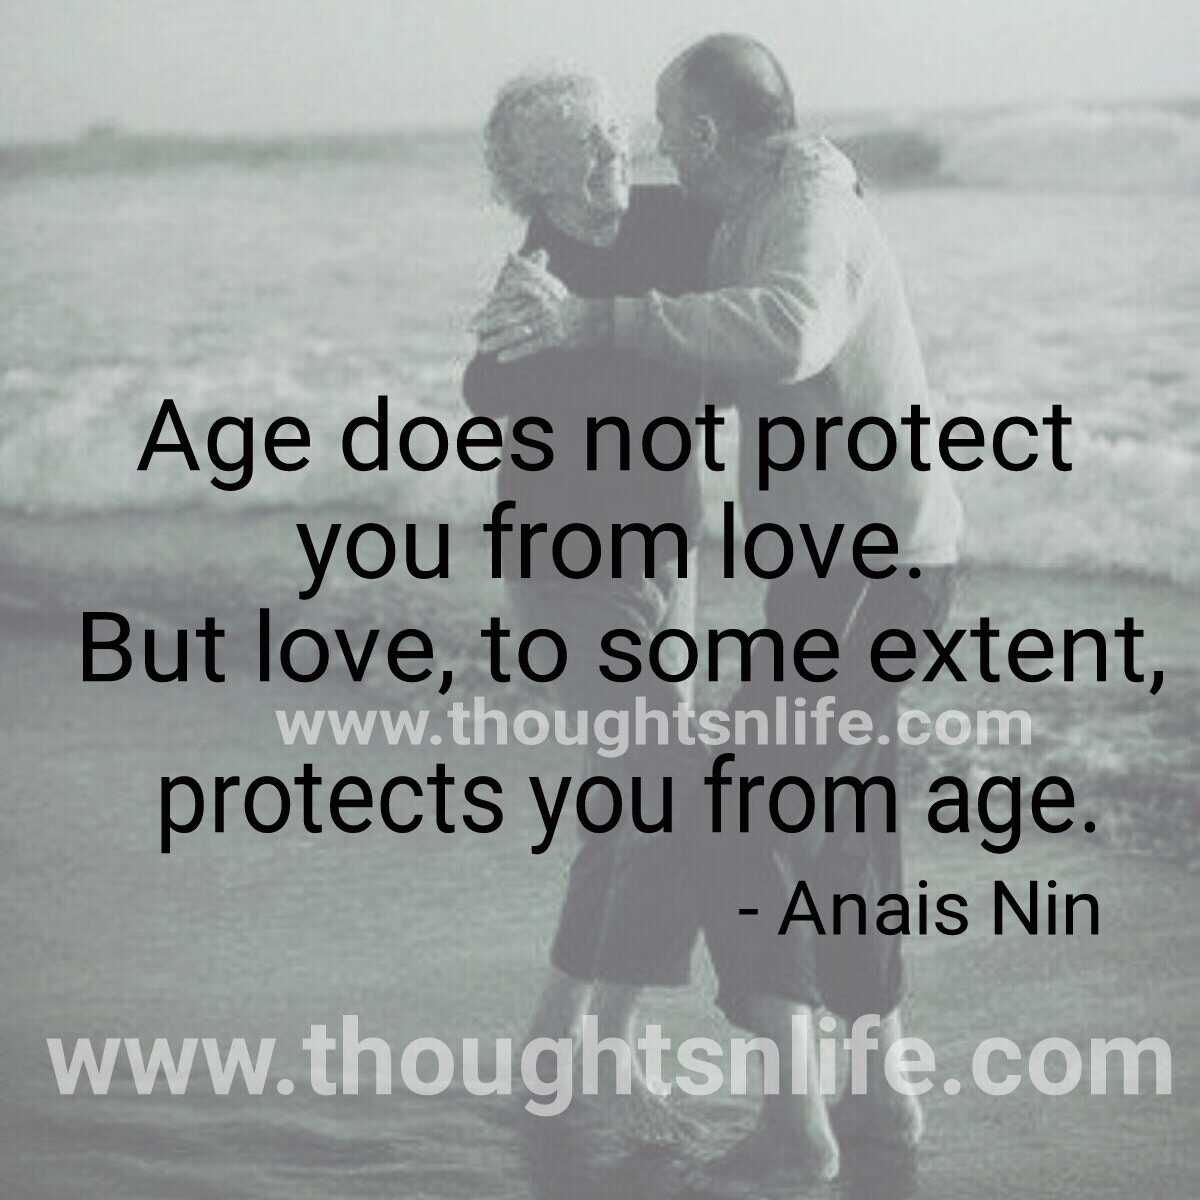 Positive Quotes About Love Age Does Not Protect You From Love.